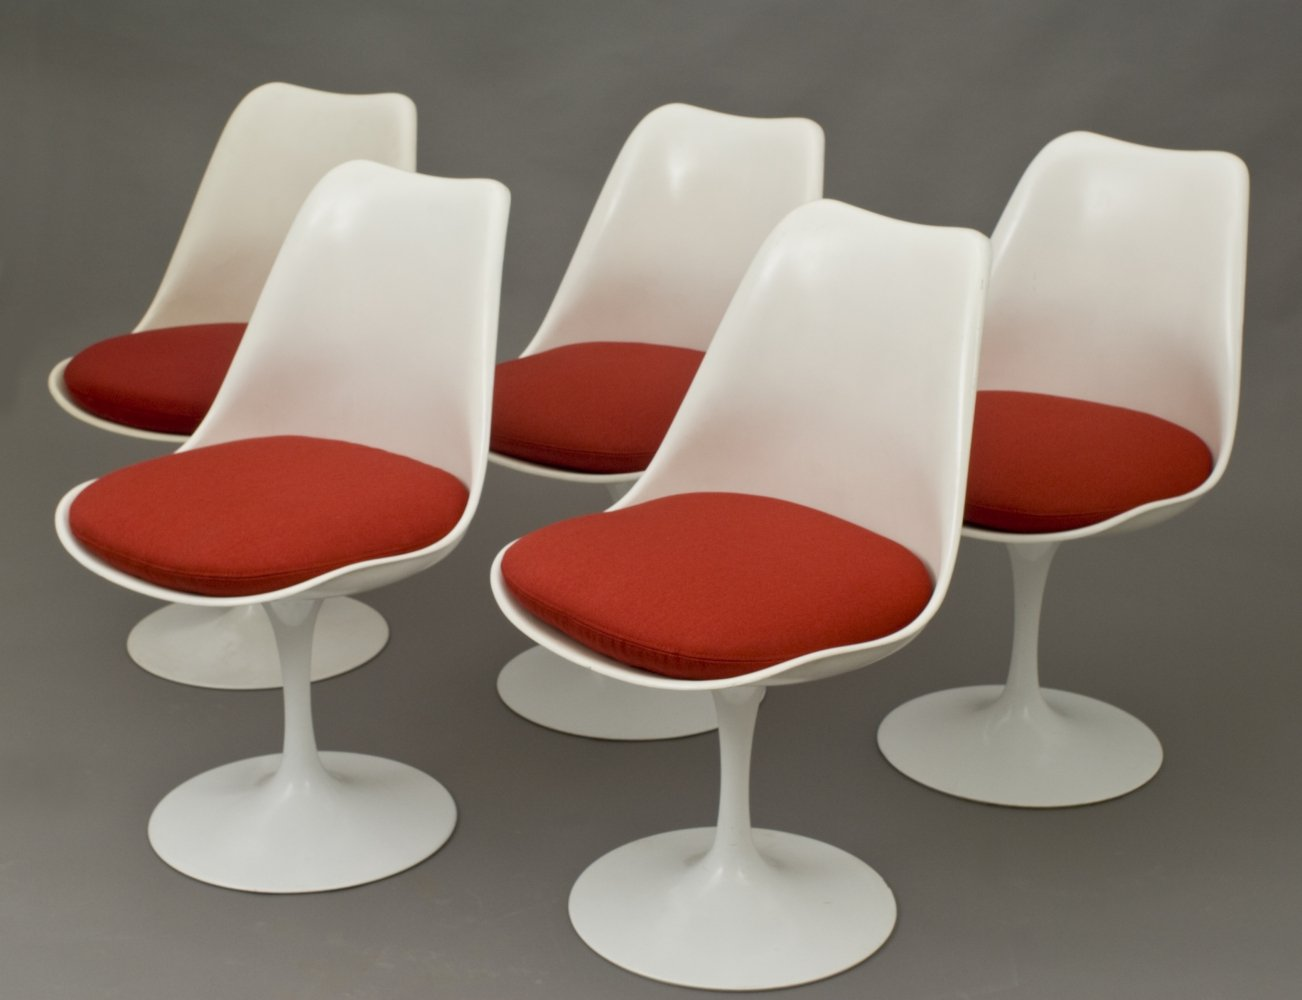 Set of 5 dining chairs by Eero Saarinen for Knoll, 1960s